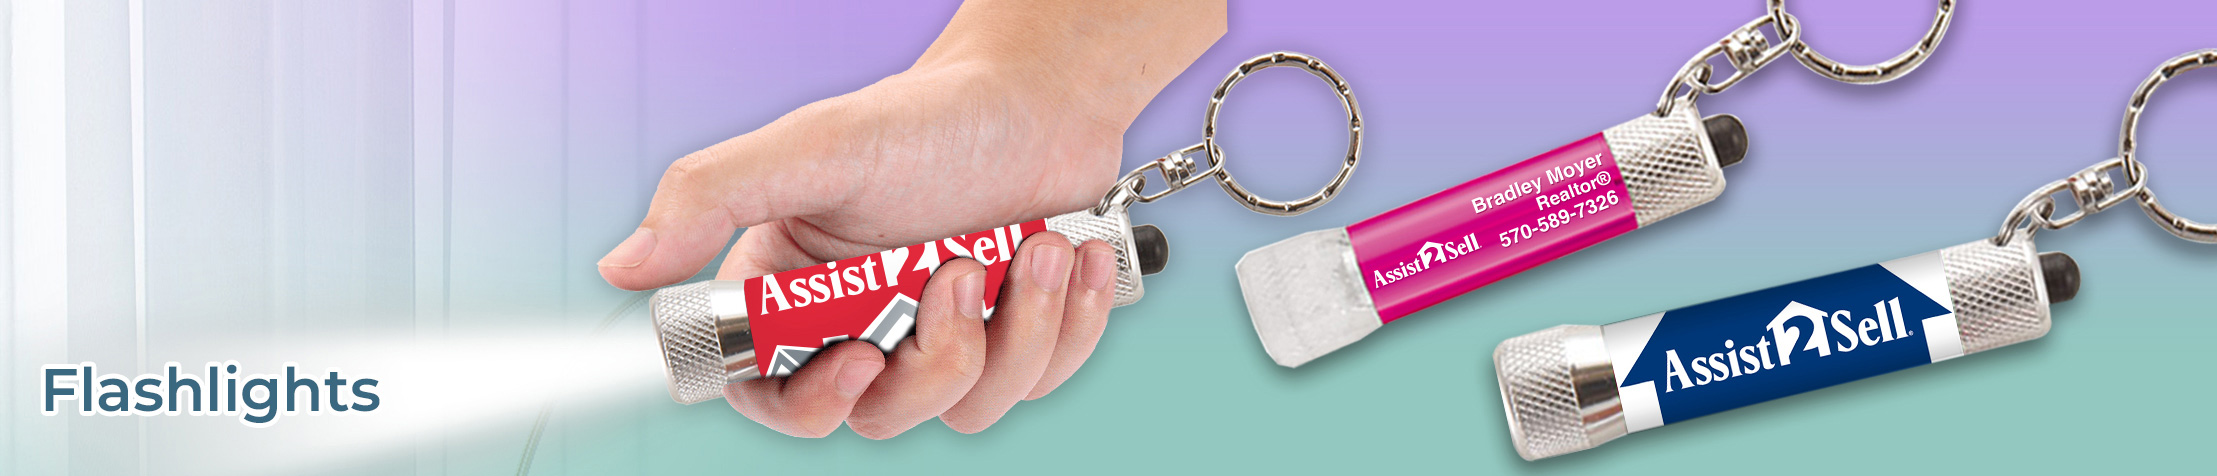 Assist2Sell Real Estate Flashlights - Assist2Sell Real Estate personalized flashlight key chain promotional items | BestPrintBuy.com